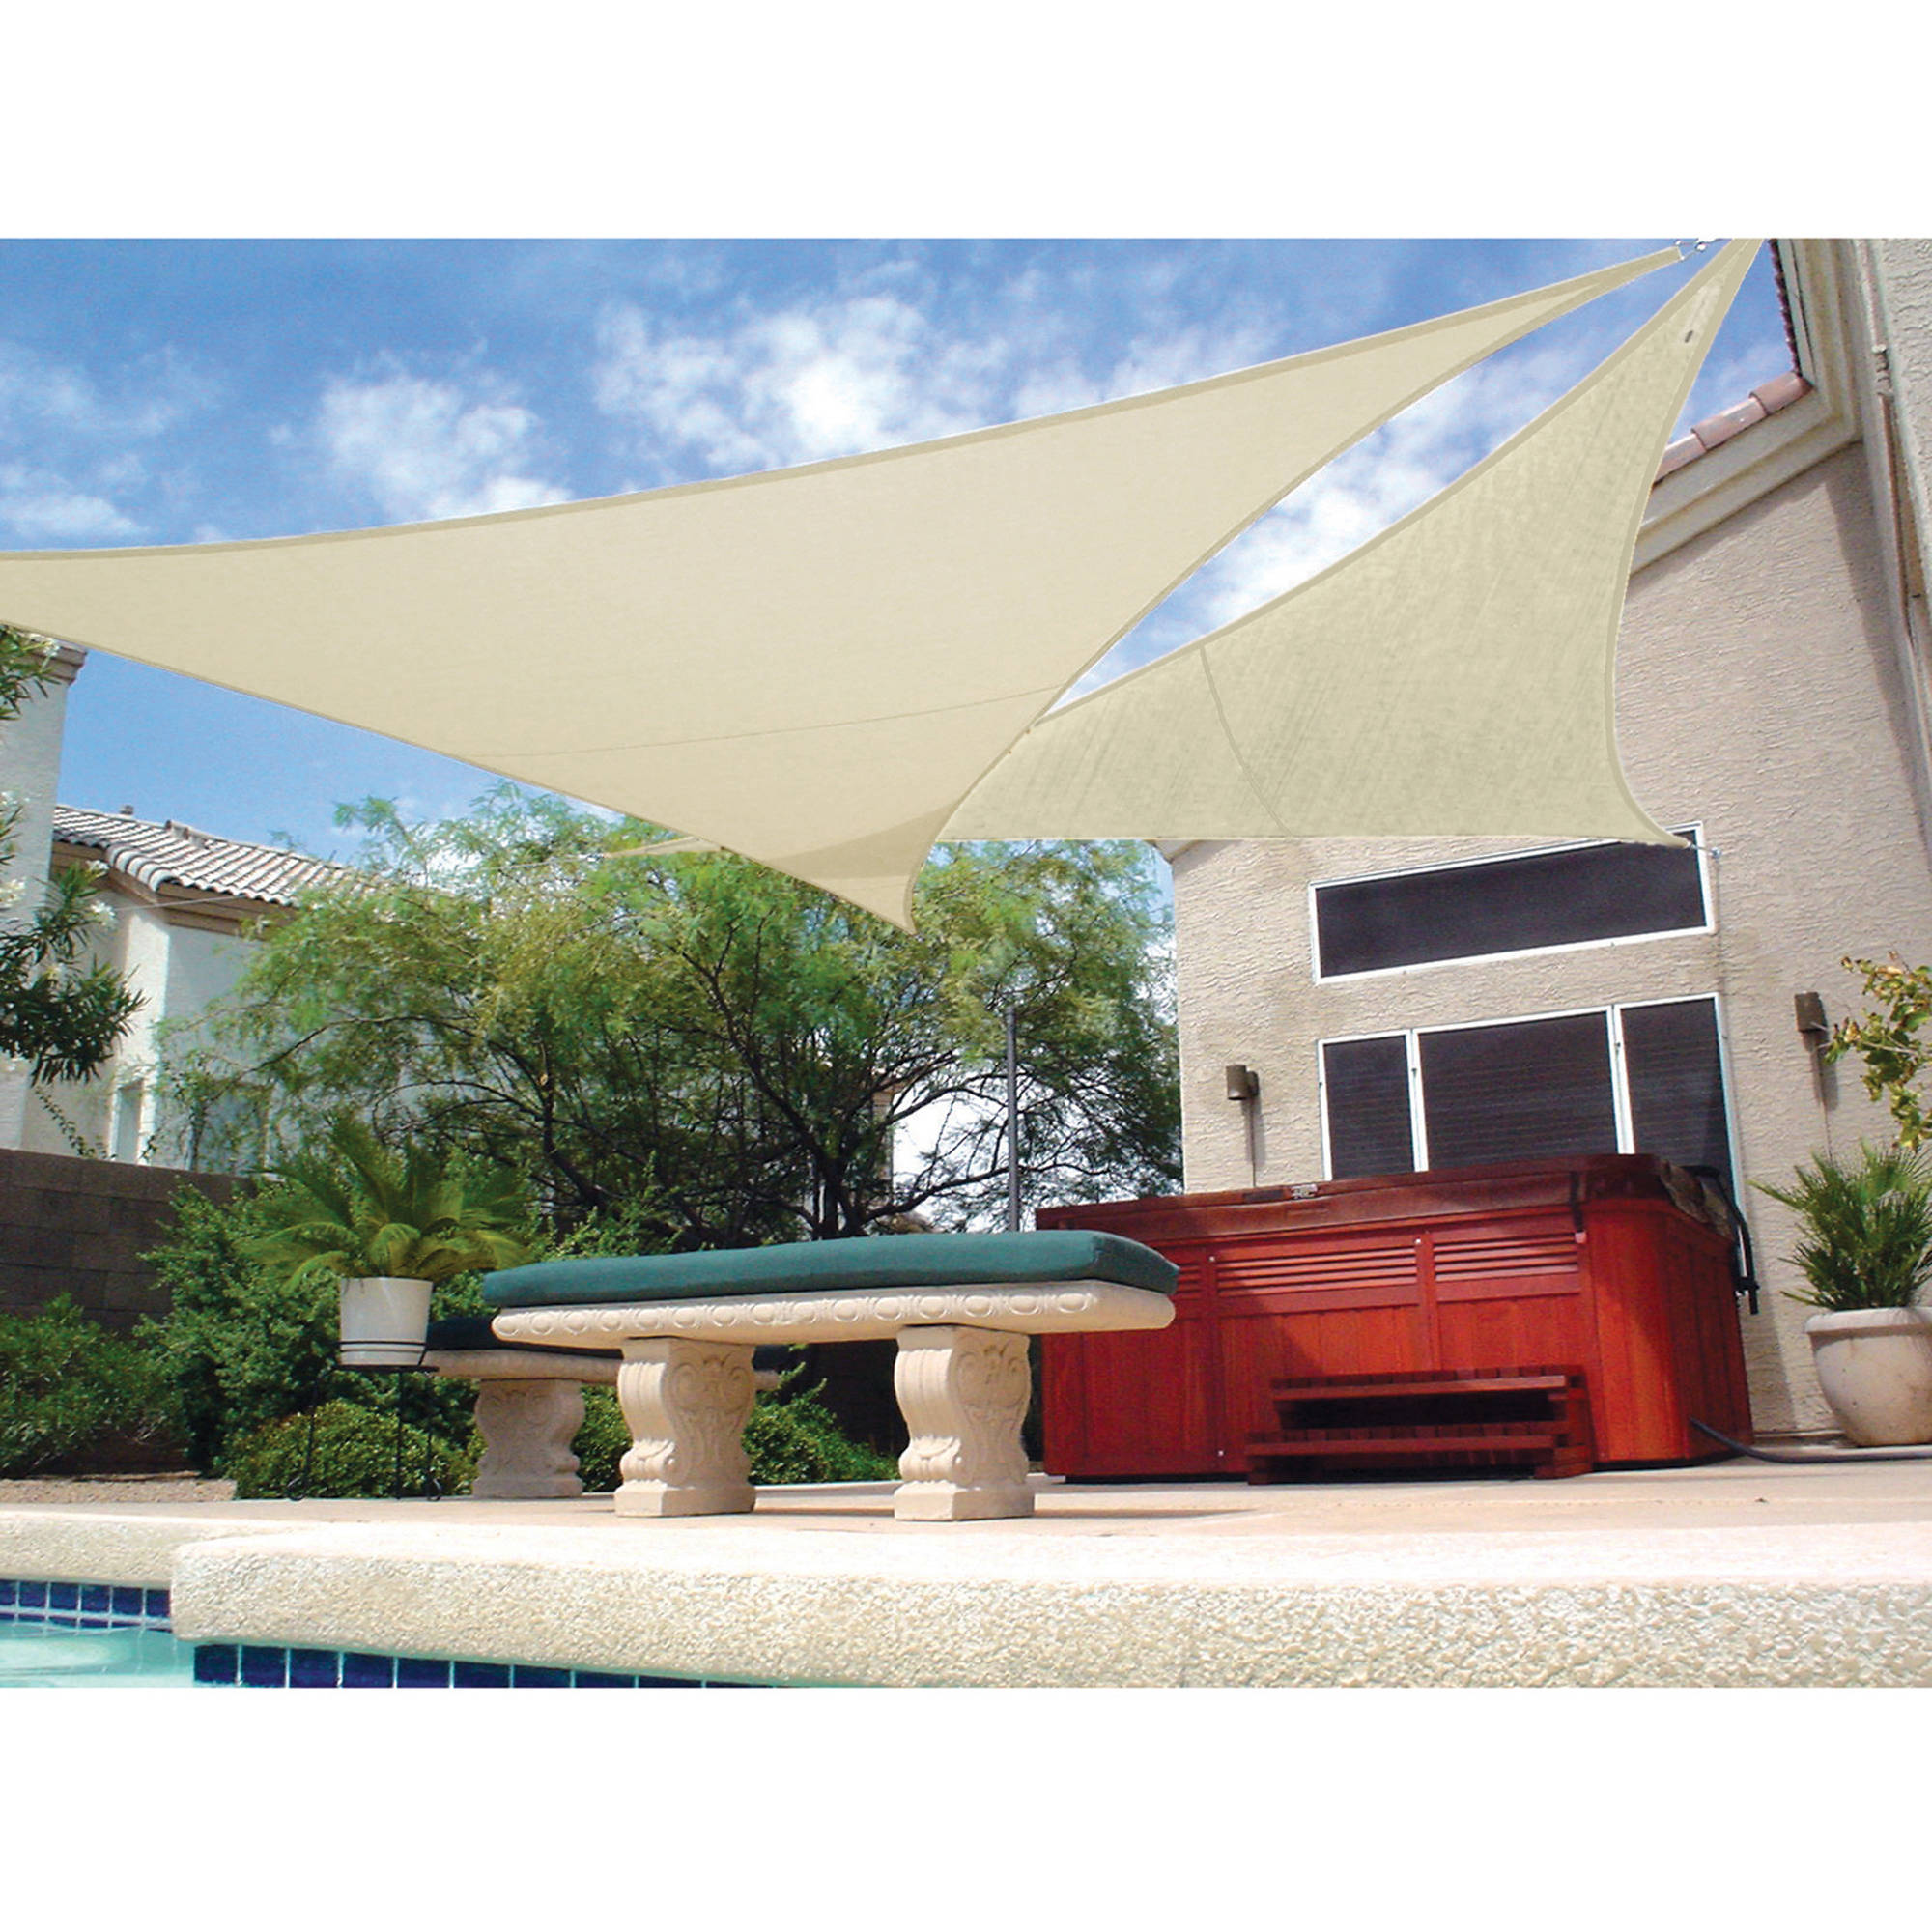 "Coolaroo Ready to Hang Shade Sail, 11'10"", Natural Colors"